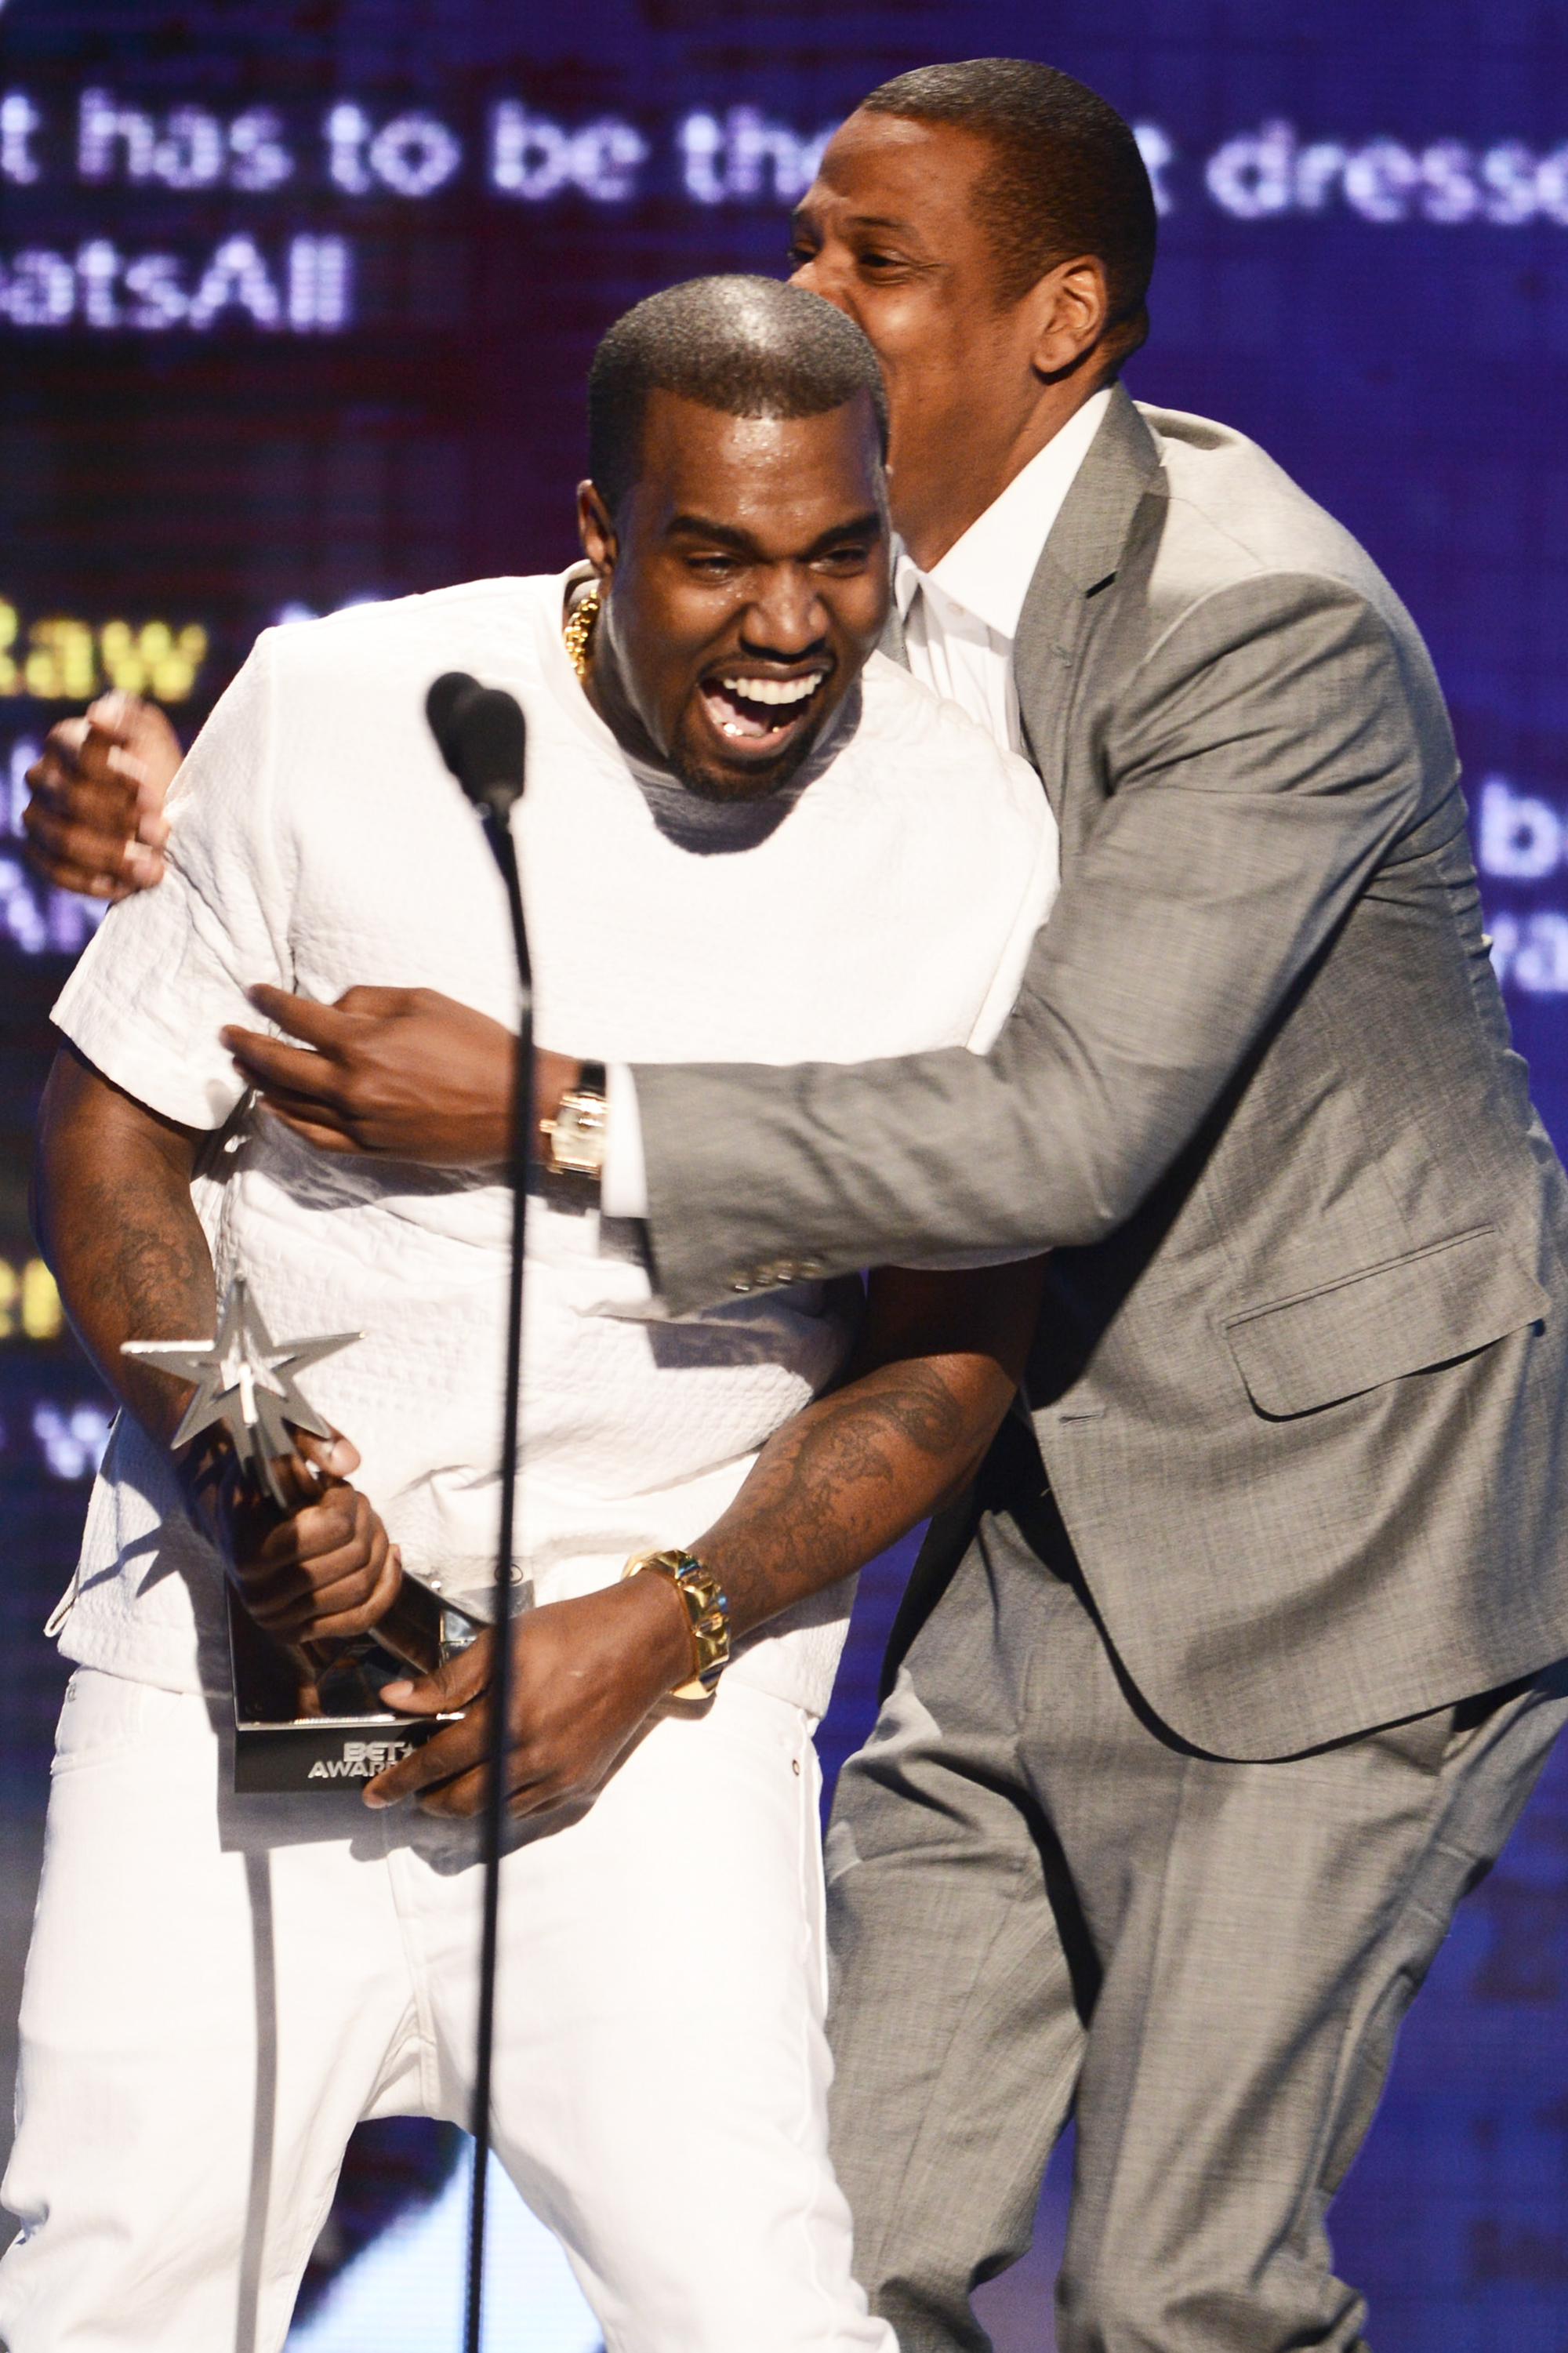 Kanye West and Jay-Z accept the award for Video of the Year onstage during the 2012 BET Awards in Los Angeles, on July 1, 2012.